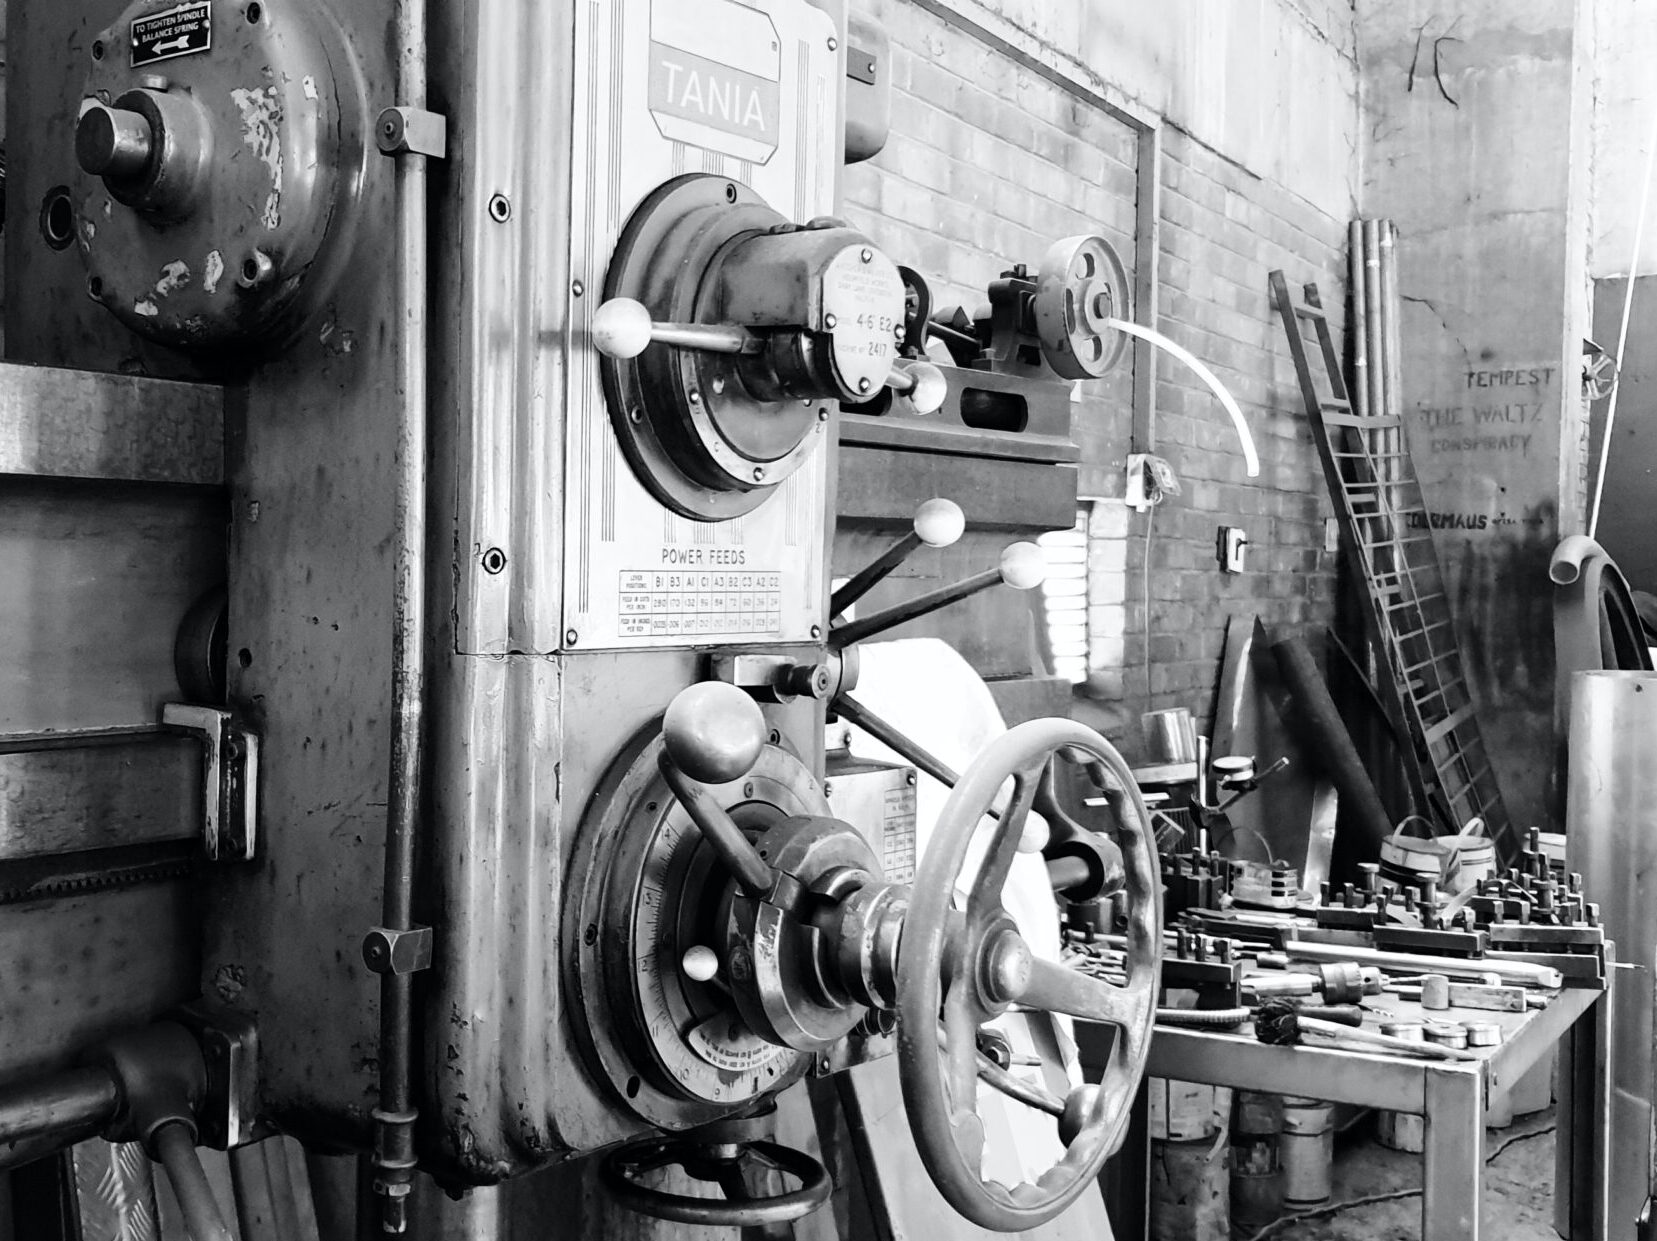 History of CPV Manufacturing, known for Superior Industrial Valves